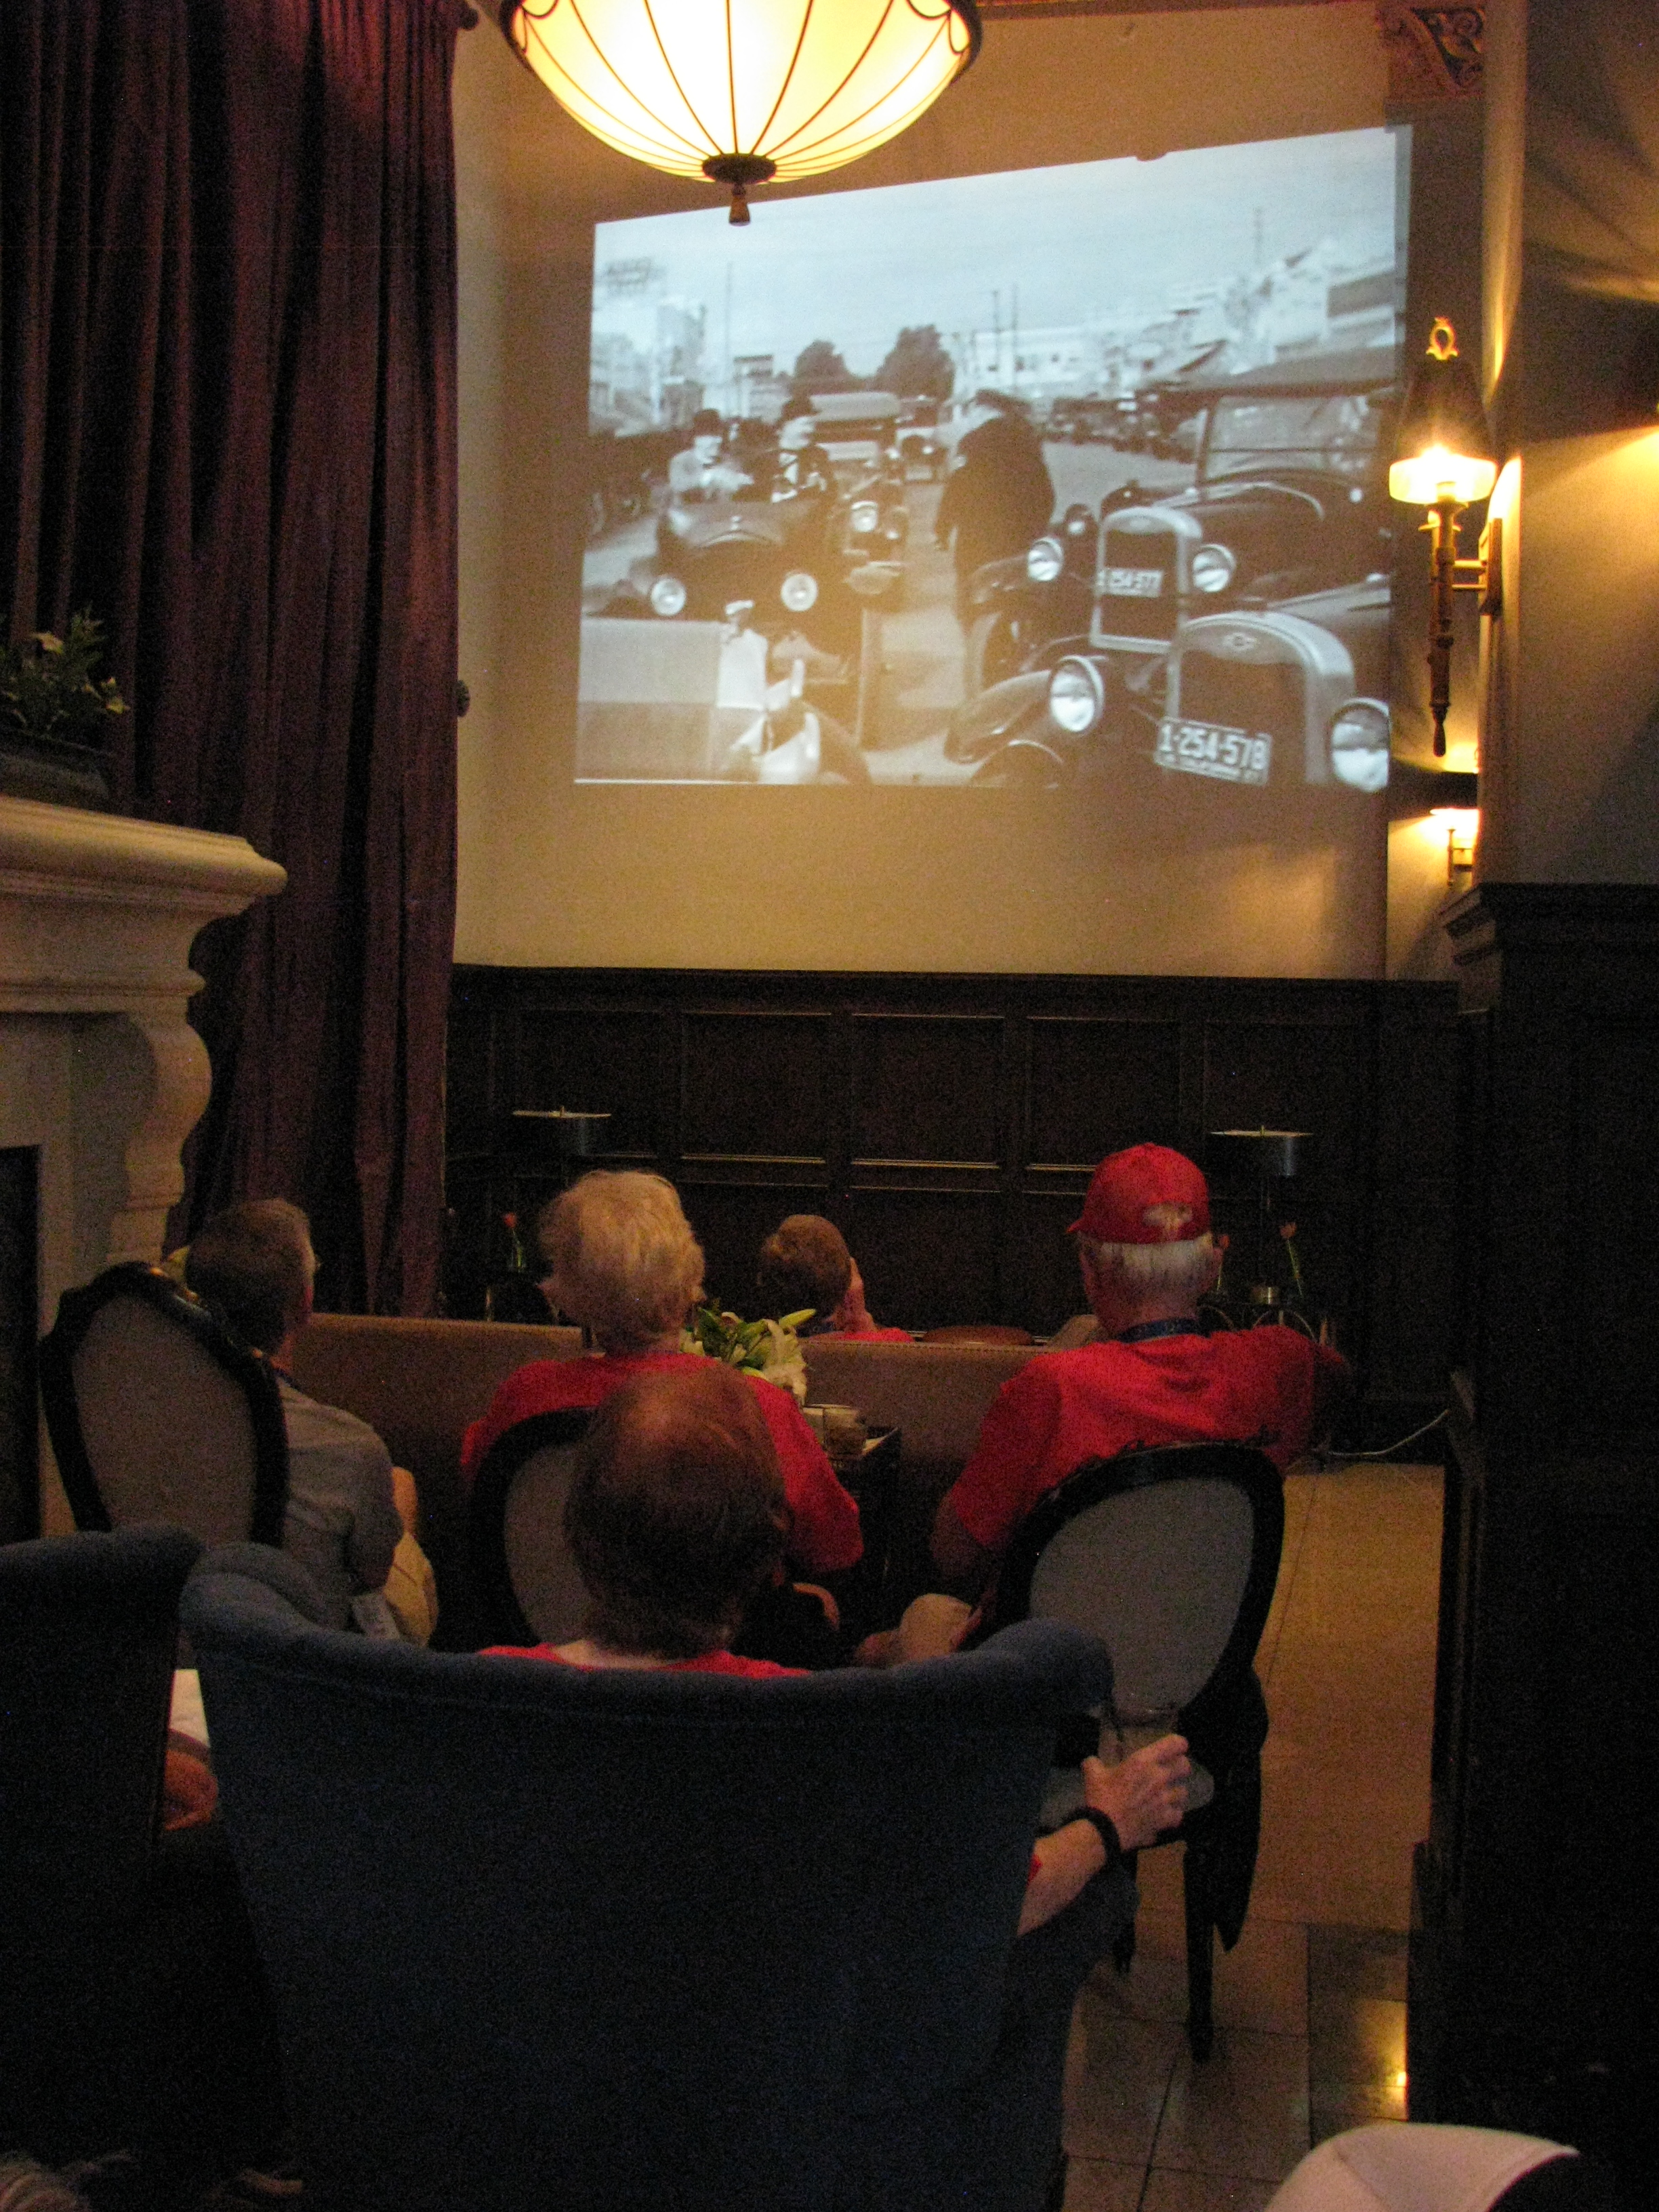 ...and the third would enjoy popcorn and drinks and watch films made at the Culver Hotel location!